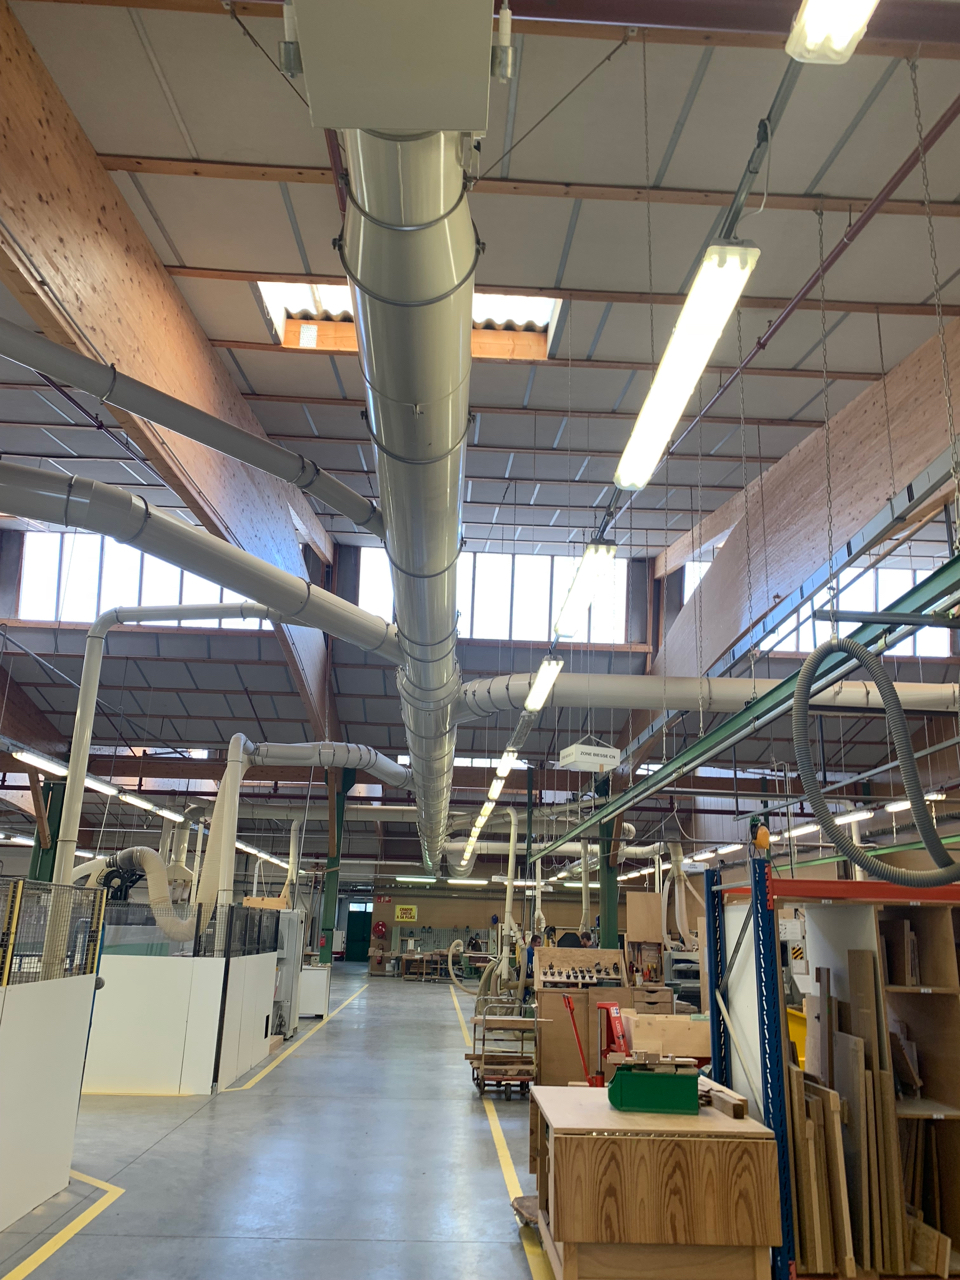 Despite numerous saws and sanders, floors in the carpentry area are saw-dust free. A complex network of tubes connected to high-power vacuums suction any waste to a central location to be compressed and burned for heat in cold seasons.